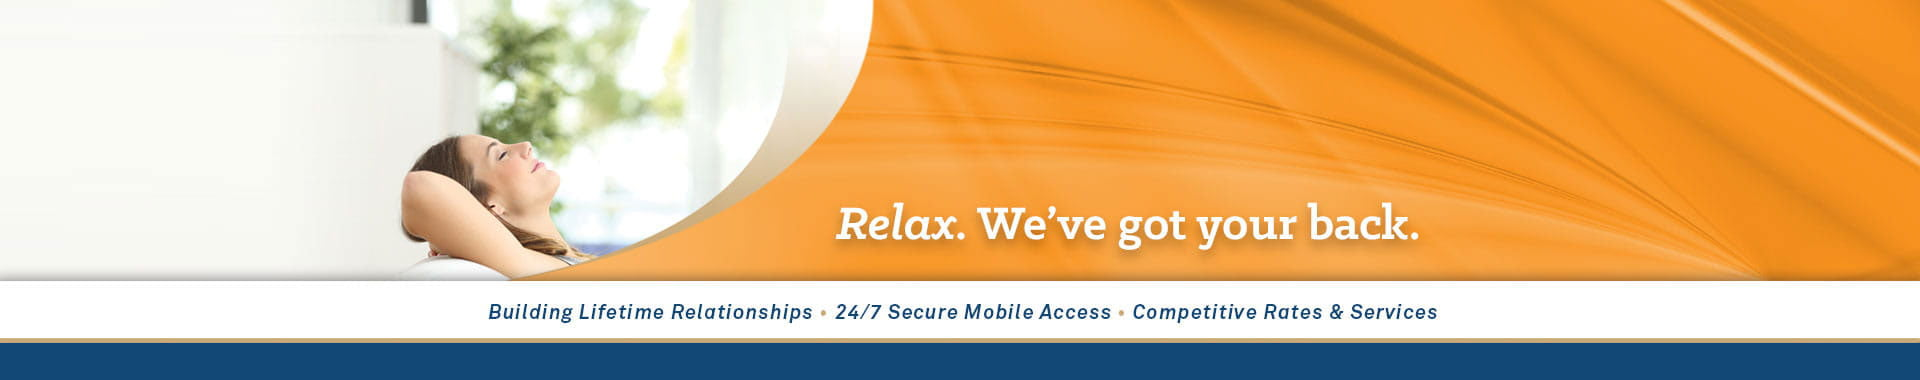 Relax. We've got your back.